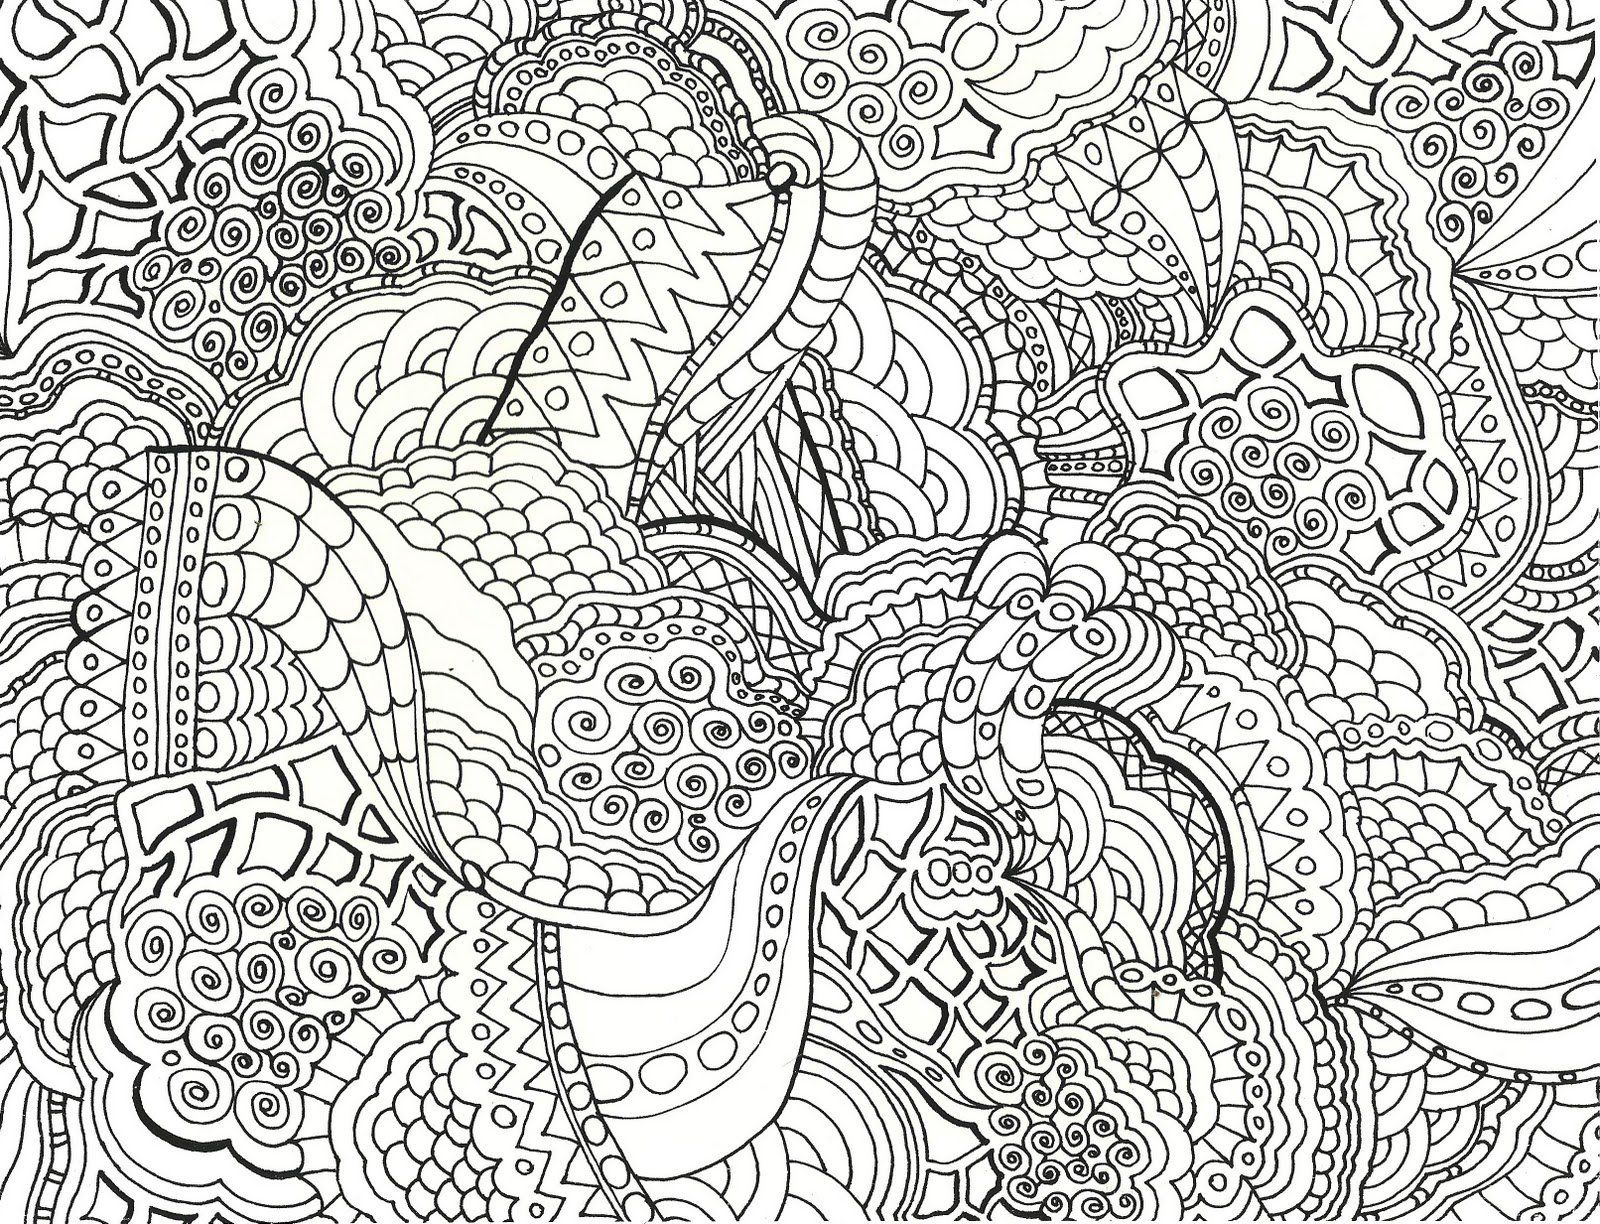 Printable Zentangle Coloring Pages Free - Coloring Home